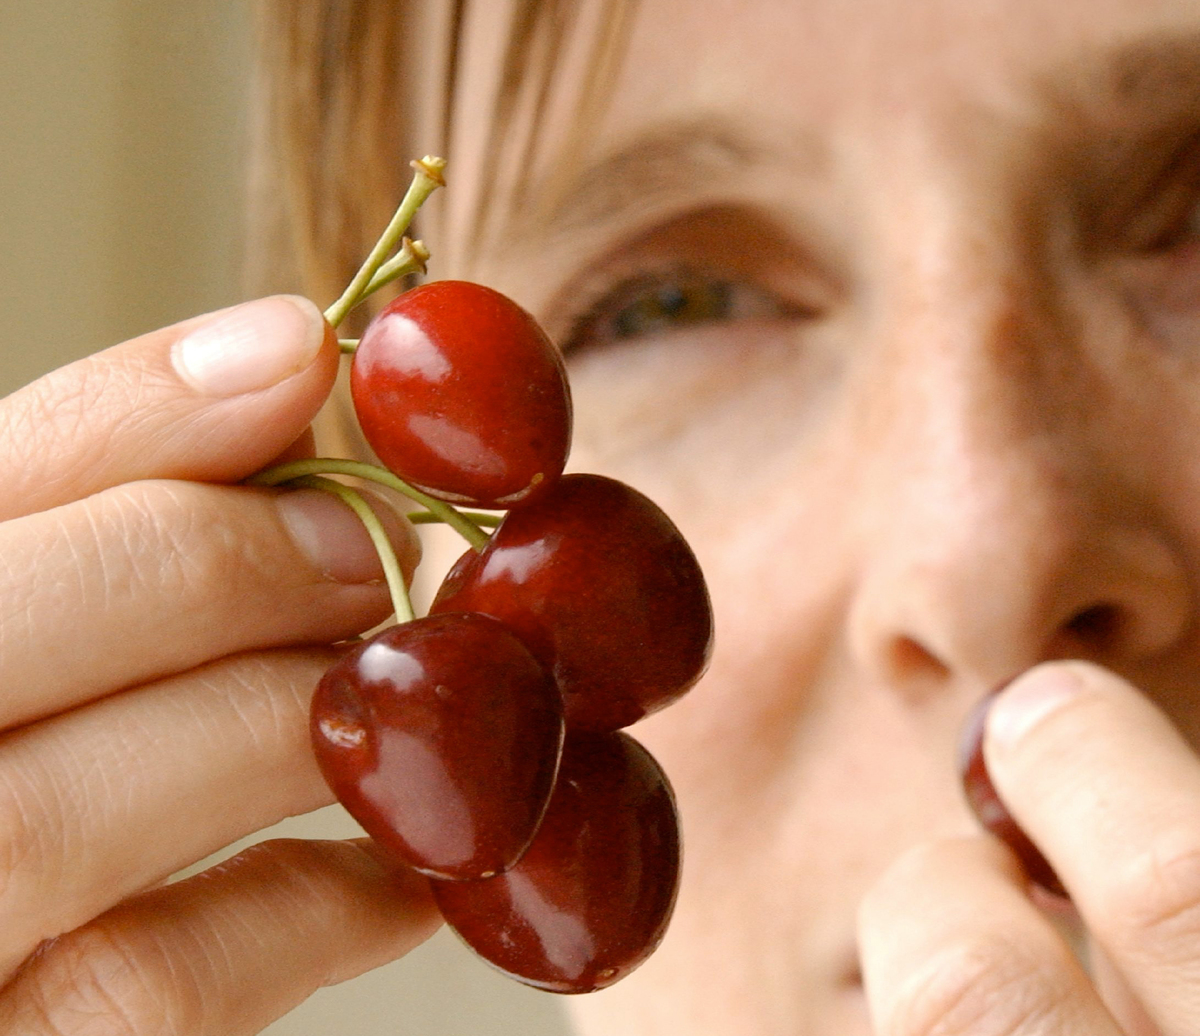 A woman holds and tastes cherries.